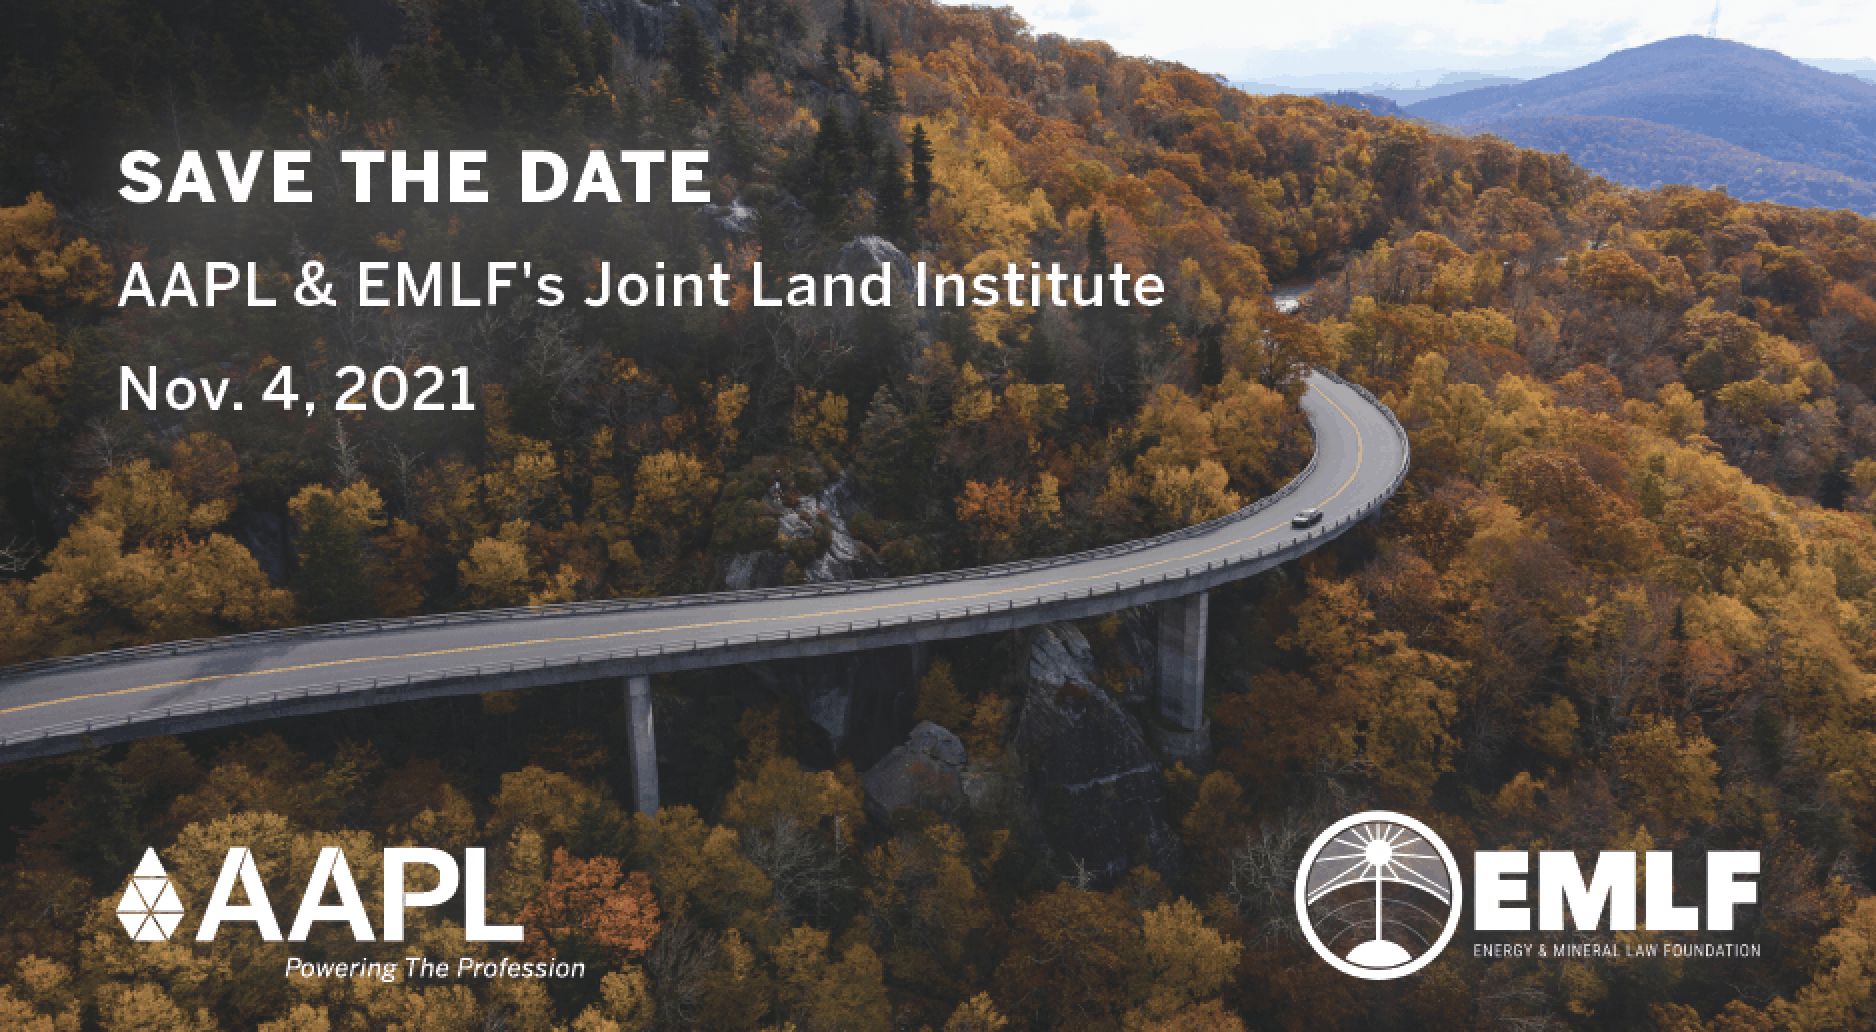 AAPL & EMLF's Joint Land Institute